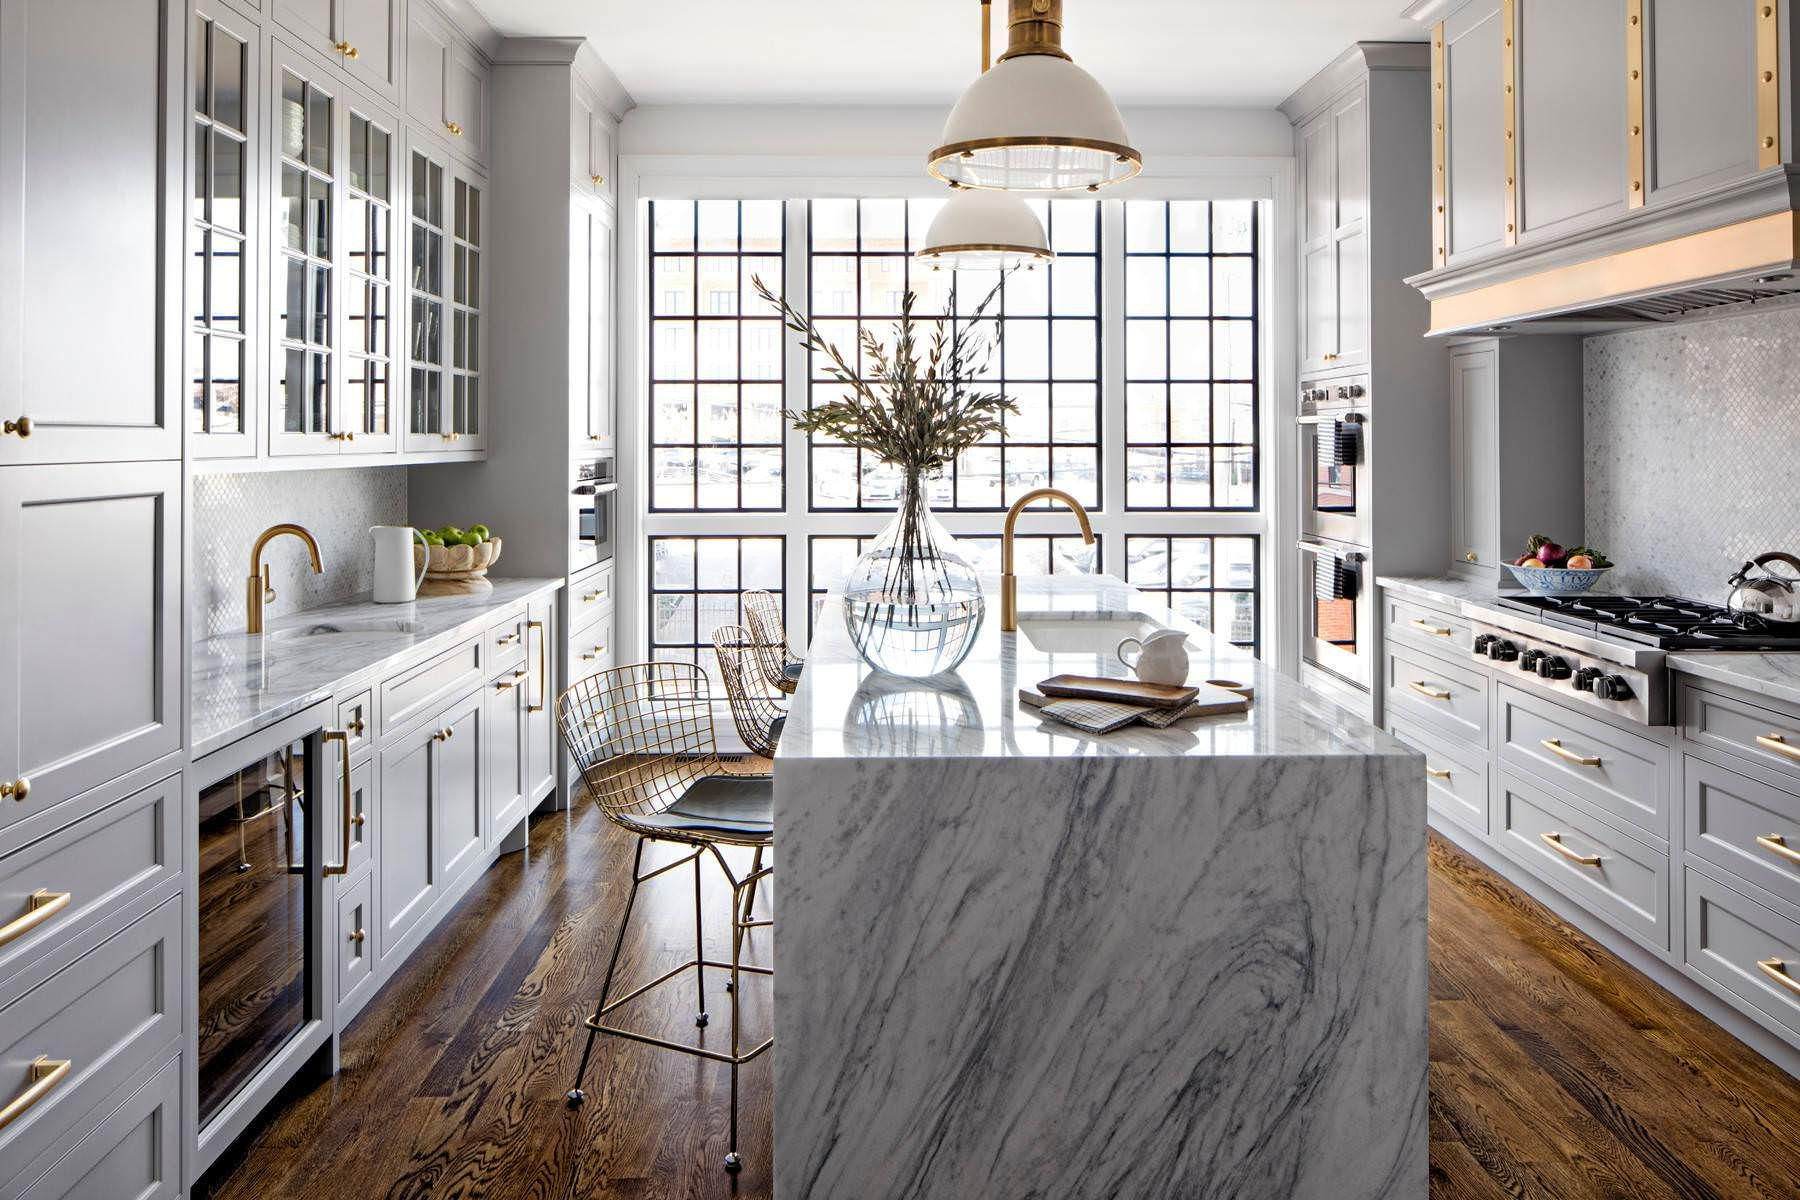 Kitchen Features A Waterfall Marble Island And Large Metal Framed